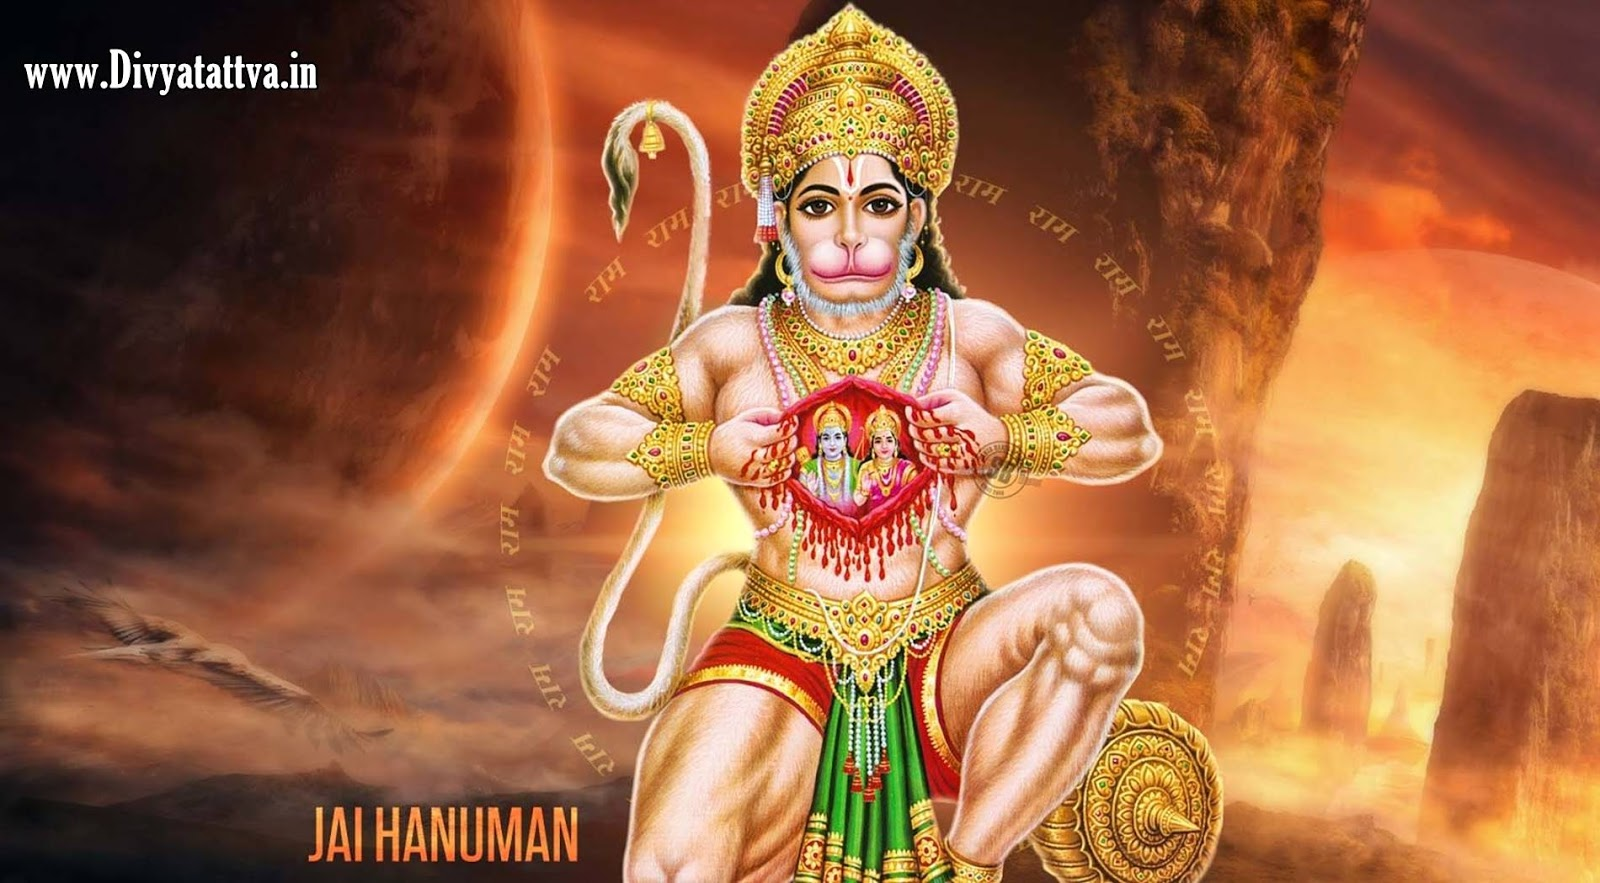 Divyatattva Astrology Free Horoscopes Psychic Tarot Yoga Tantra Occult Images Videos Bajrang Bali Wallpapers God Hanuman Hd Backgrounds Photos Download